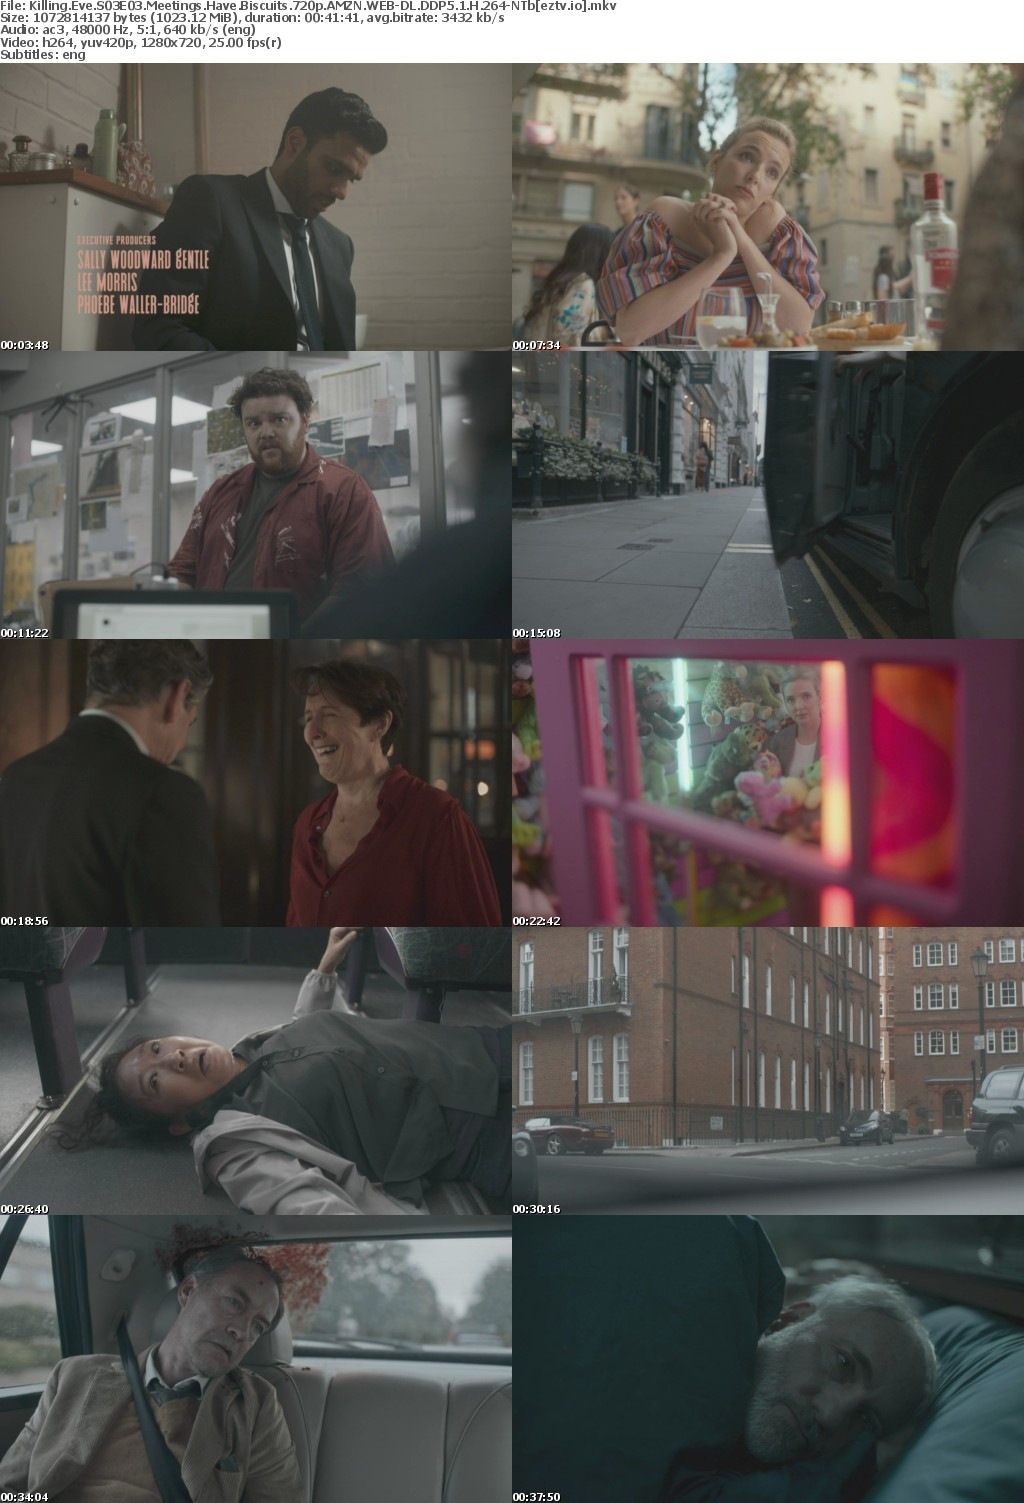 Killing Eve S03E03 Meetings Have Biscuits 720p AMZN WEB-DL DDP5 1 H 264-NTb